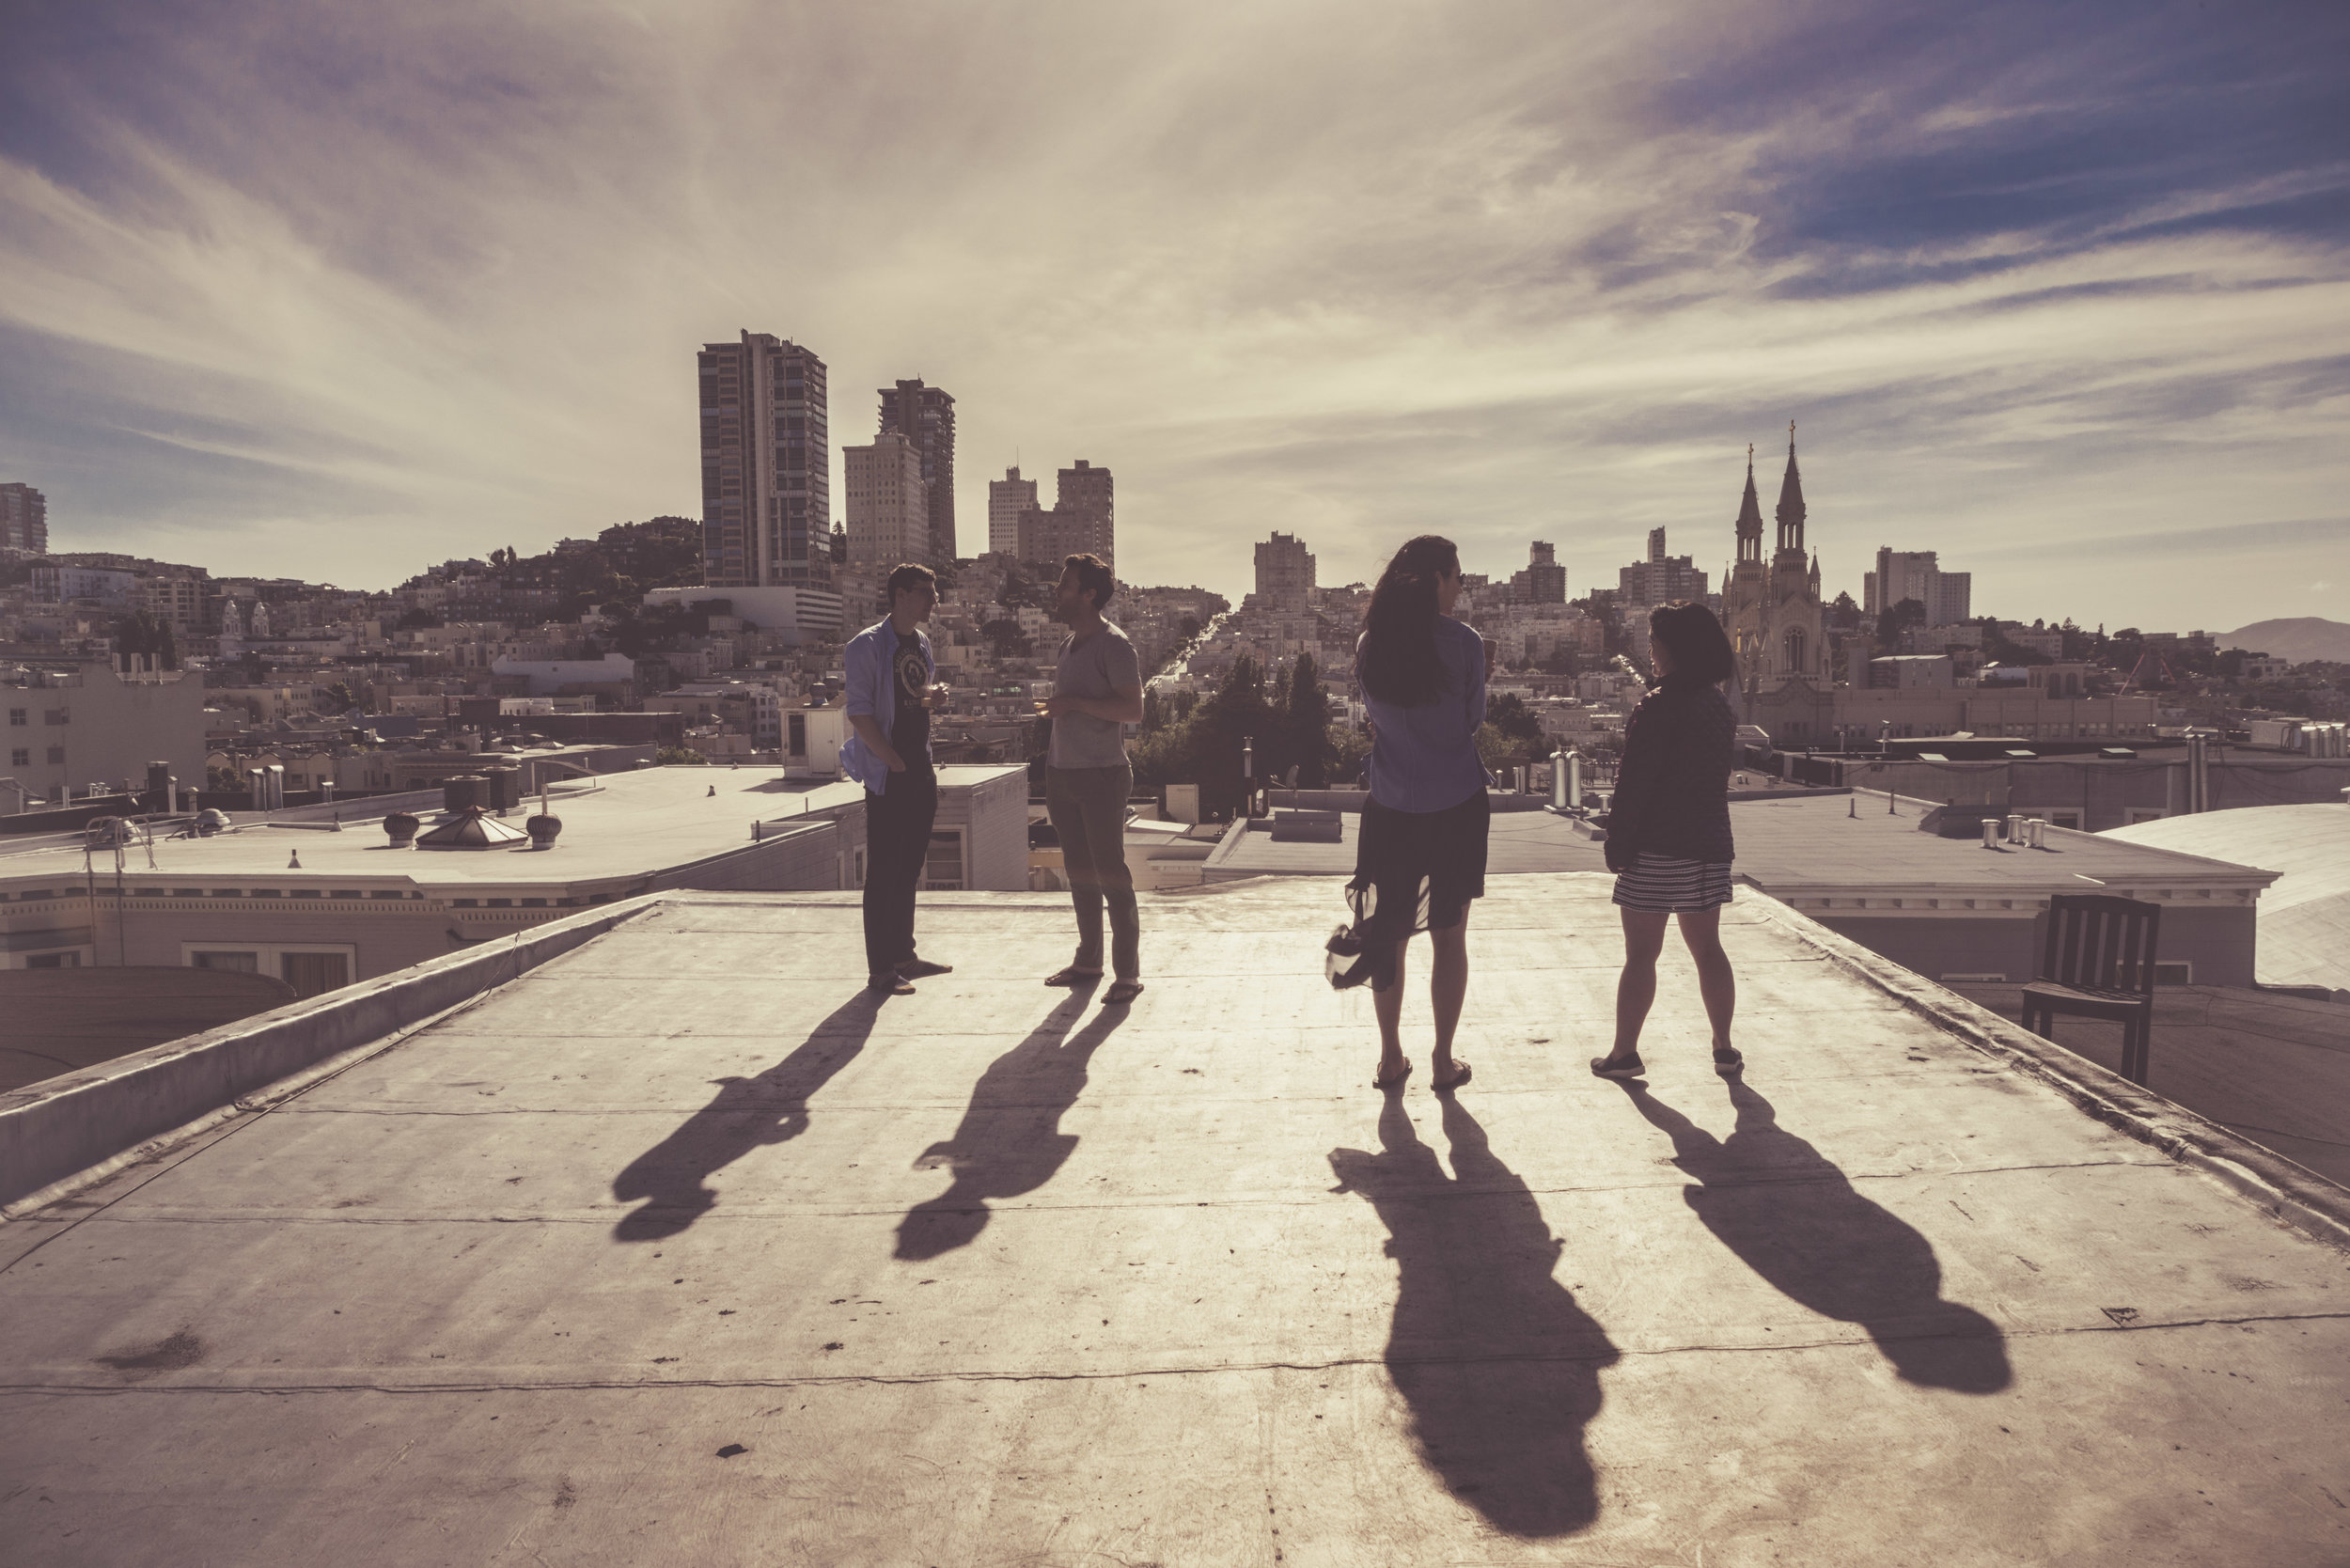 Roof top SFO / Lifestyle